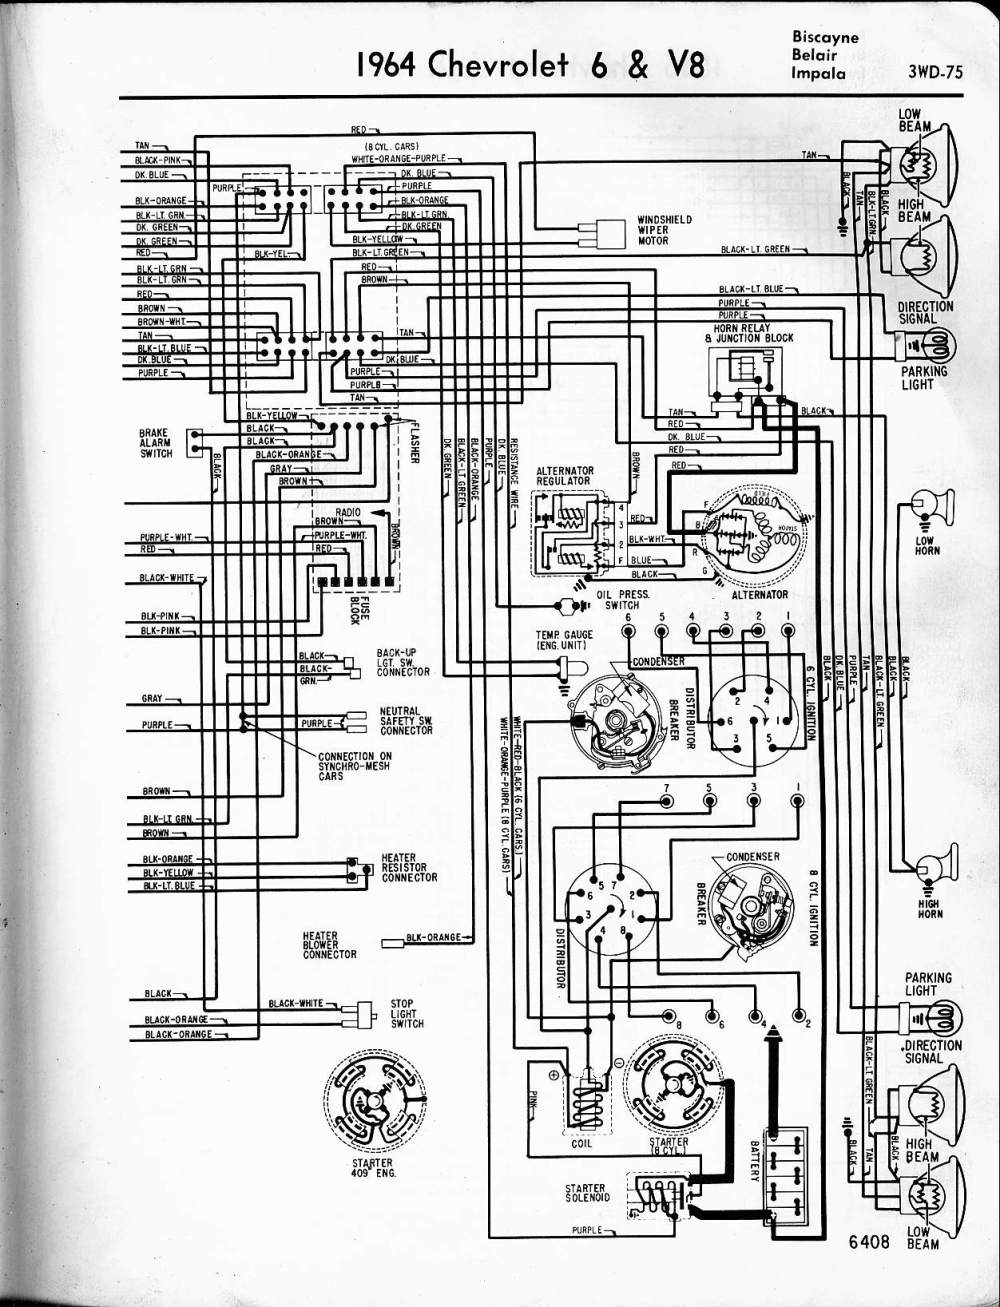 medium resolution of 57 65 chevy wiring diagrams 1964 impala tail light wiring diagram 1964 6 v8 biscayne